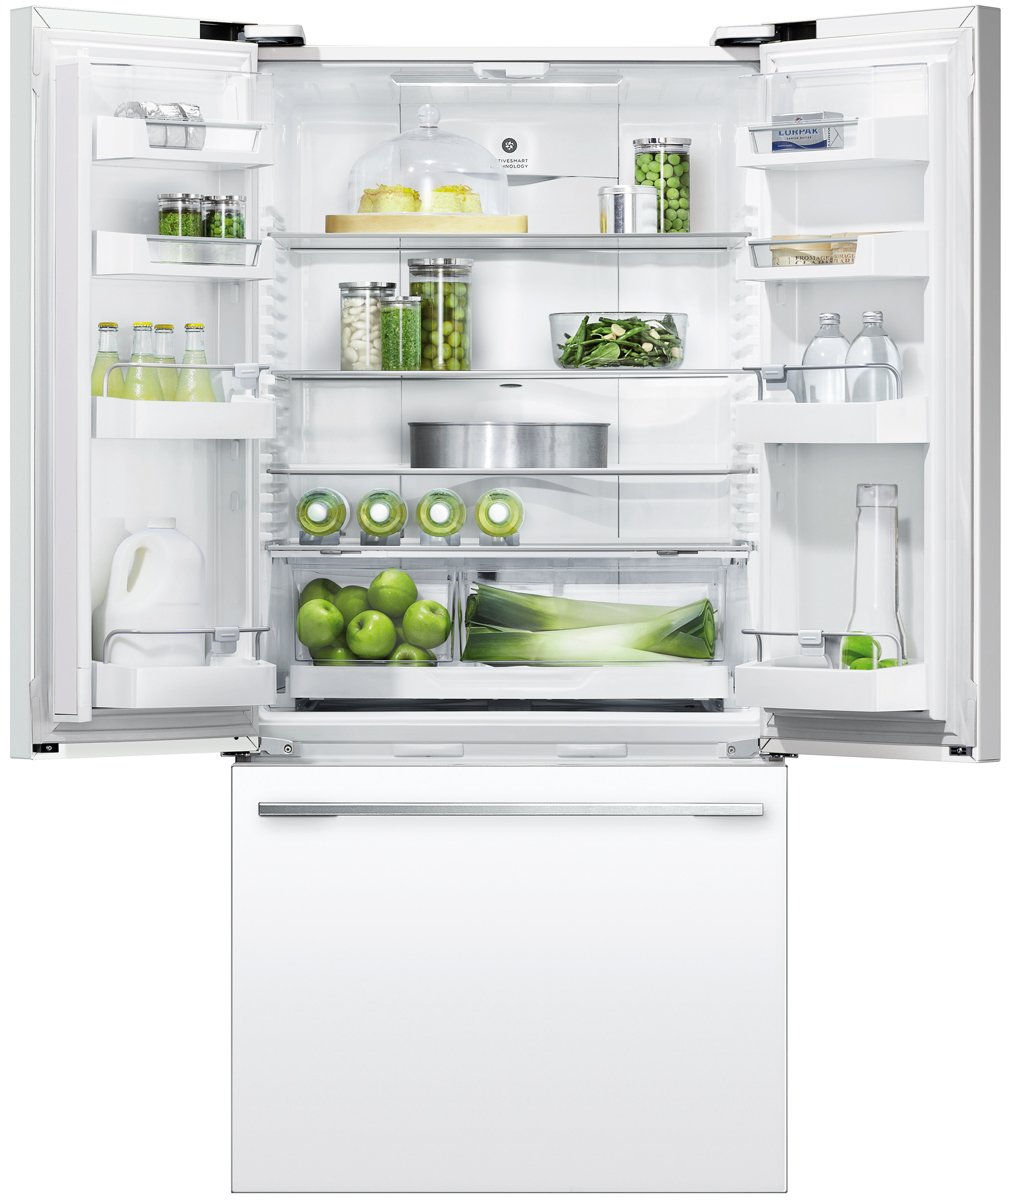 Fisher and paykel french door fridge reviews - Fisher Paykel Rf522adw4 519l French Door Fridge